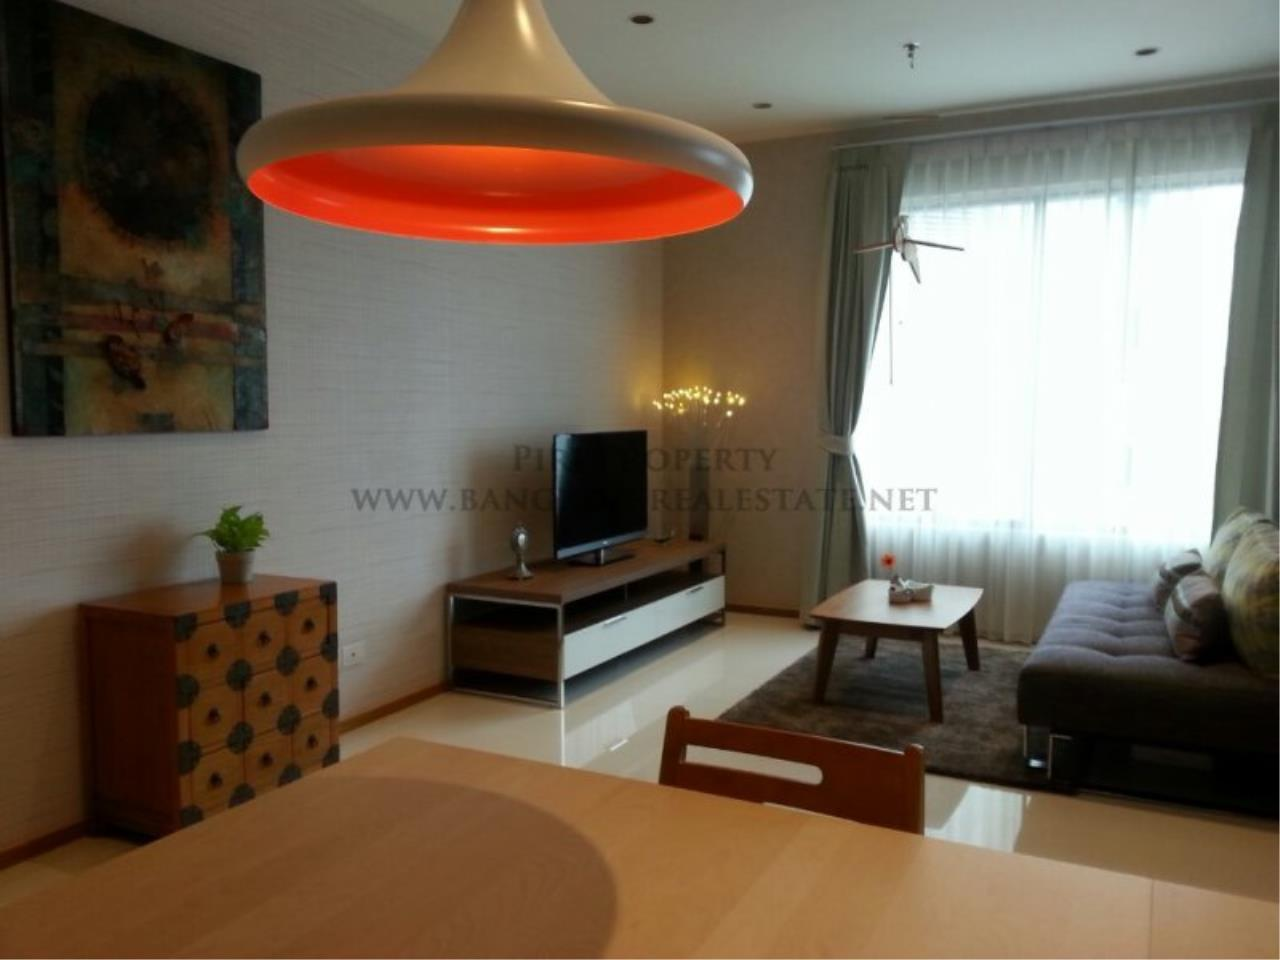 Piri Property Agency's Emporio Place Condo in Phrom Phong - 1 Bedroom for Rent 4